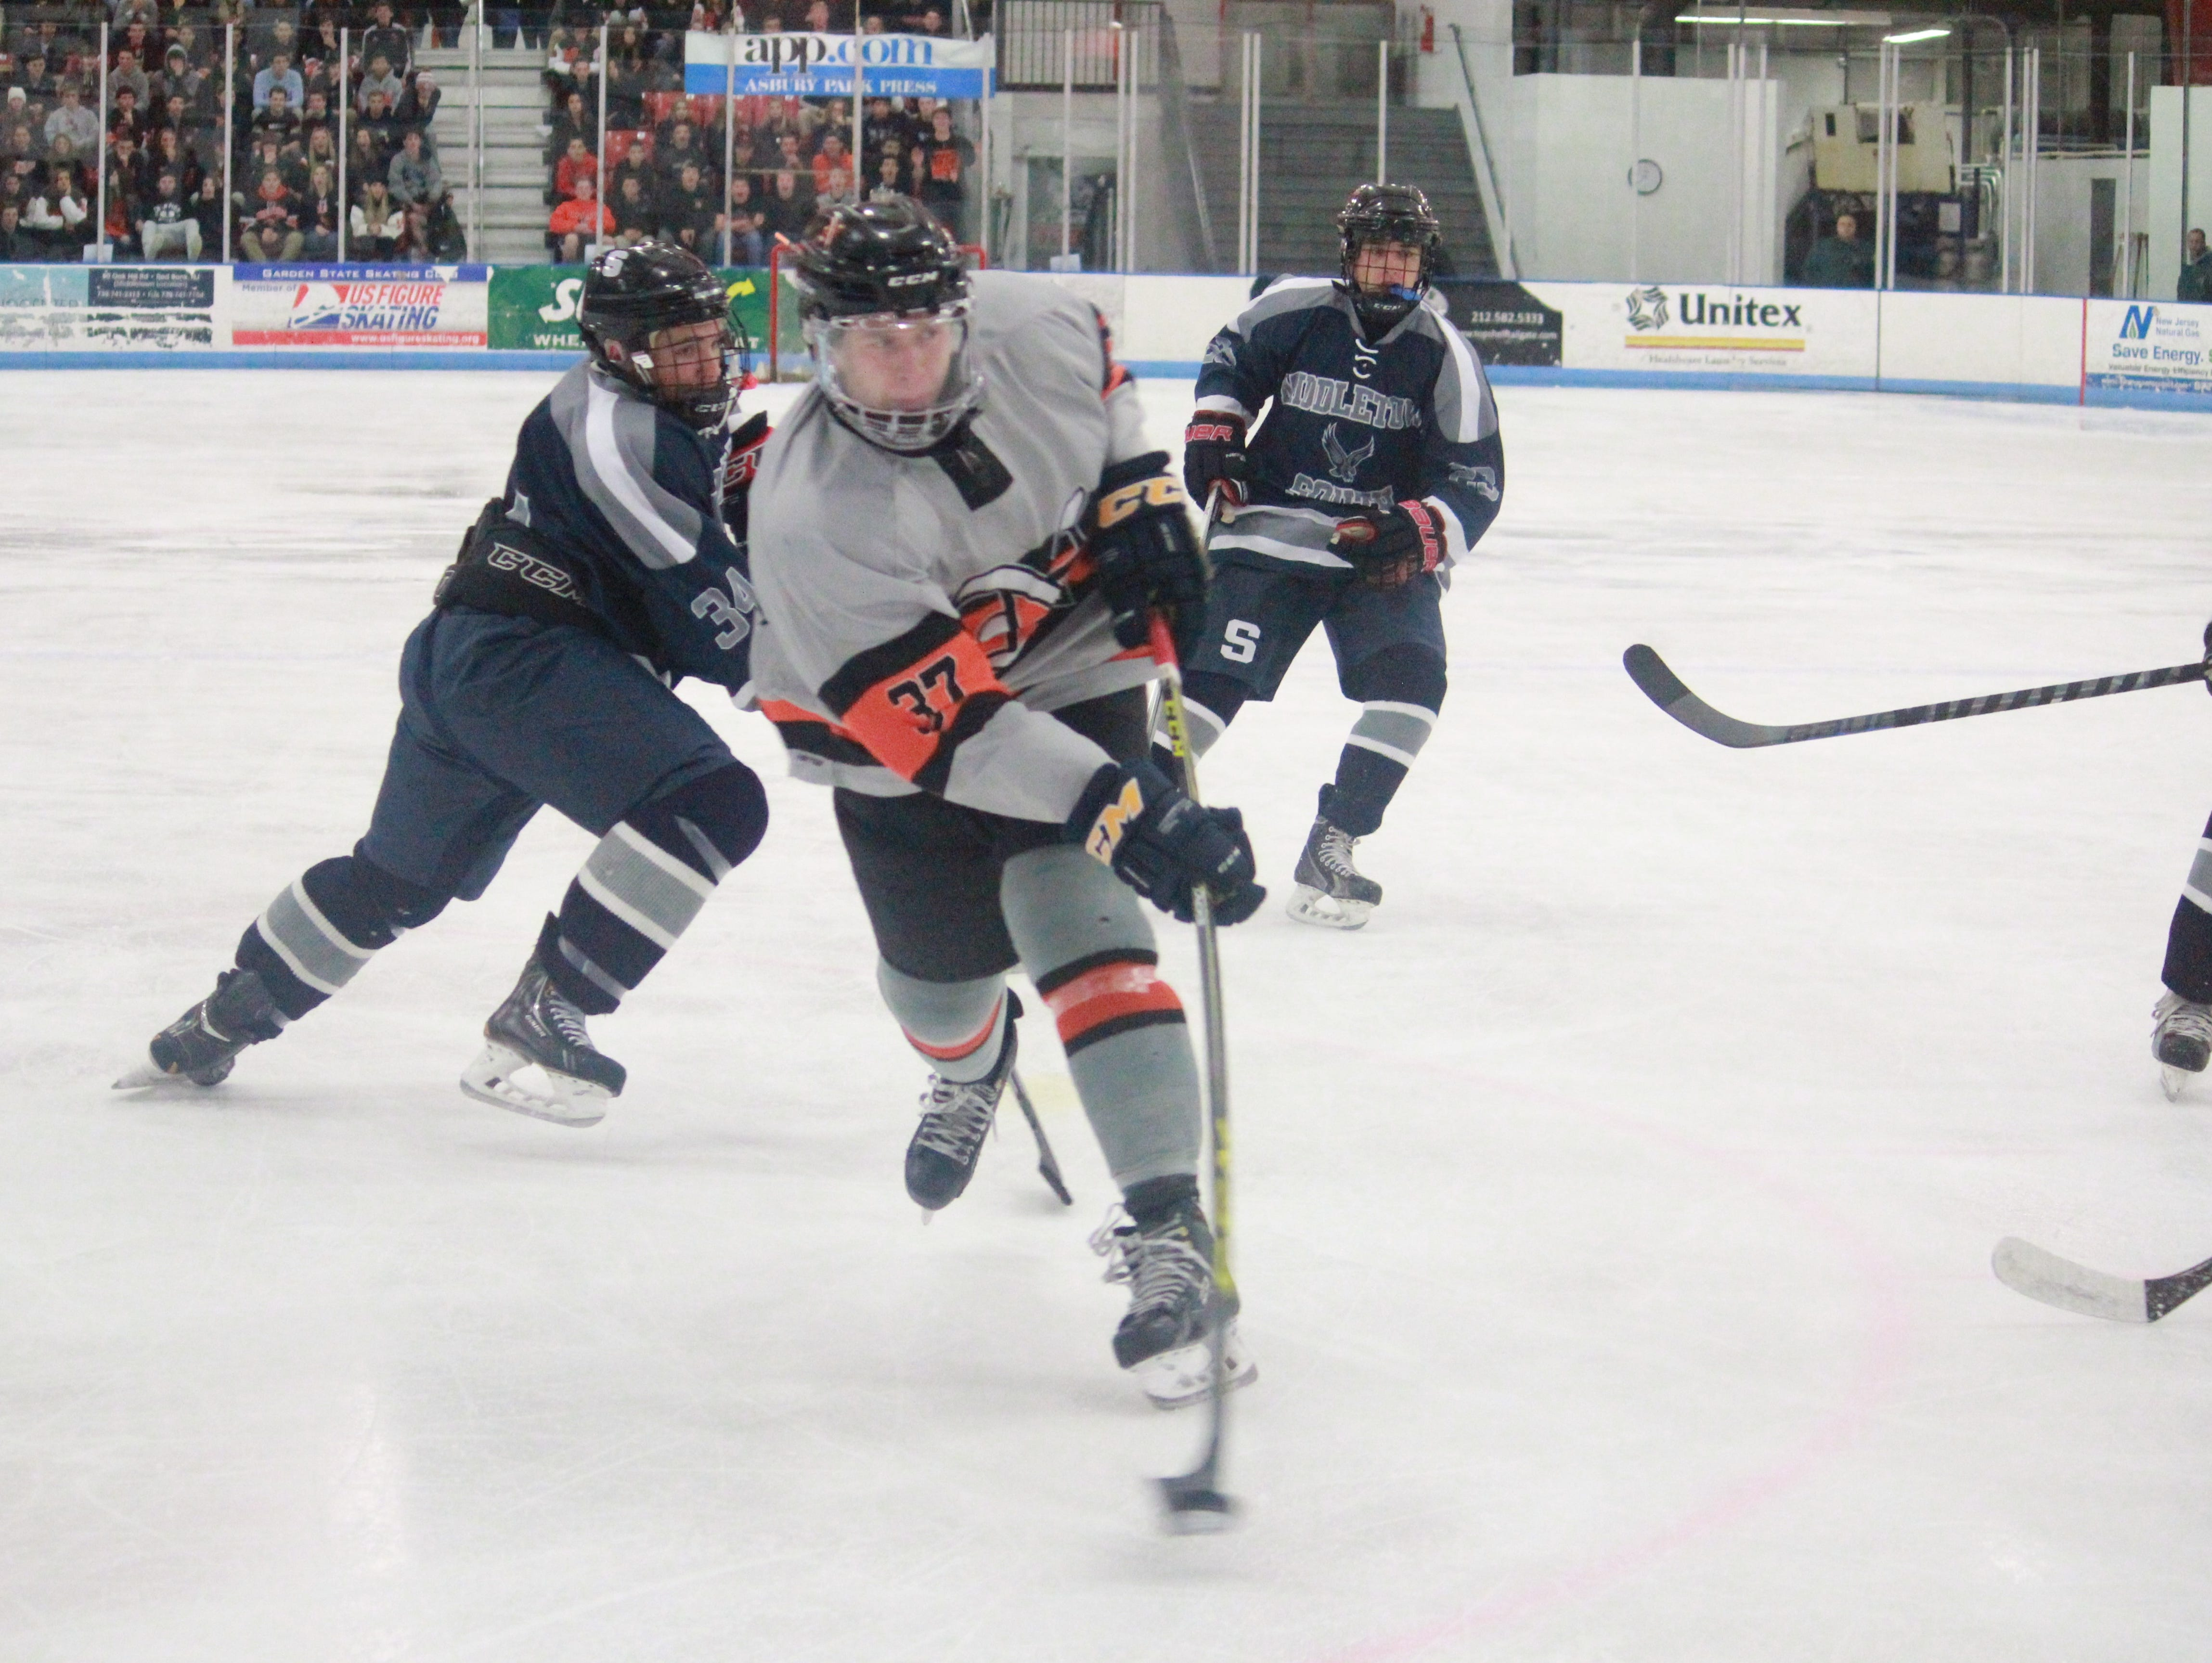 Bobby Hampton whips a wrist shot to the back of the net in the Lions 4-3 win over the Eagles.